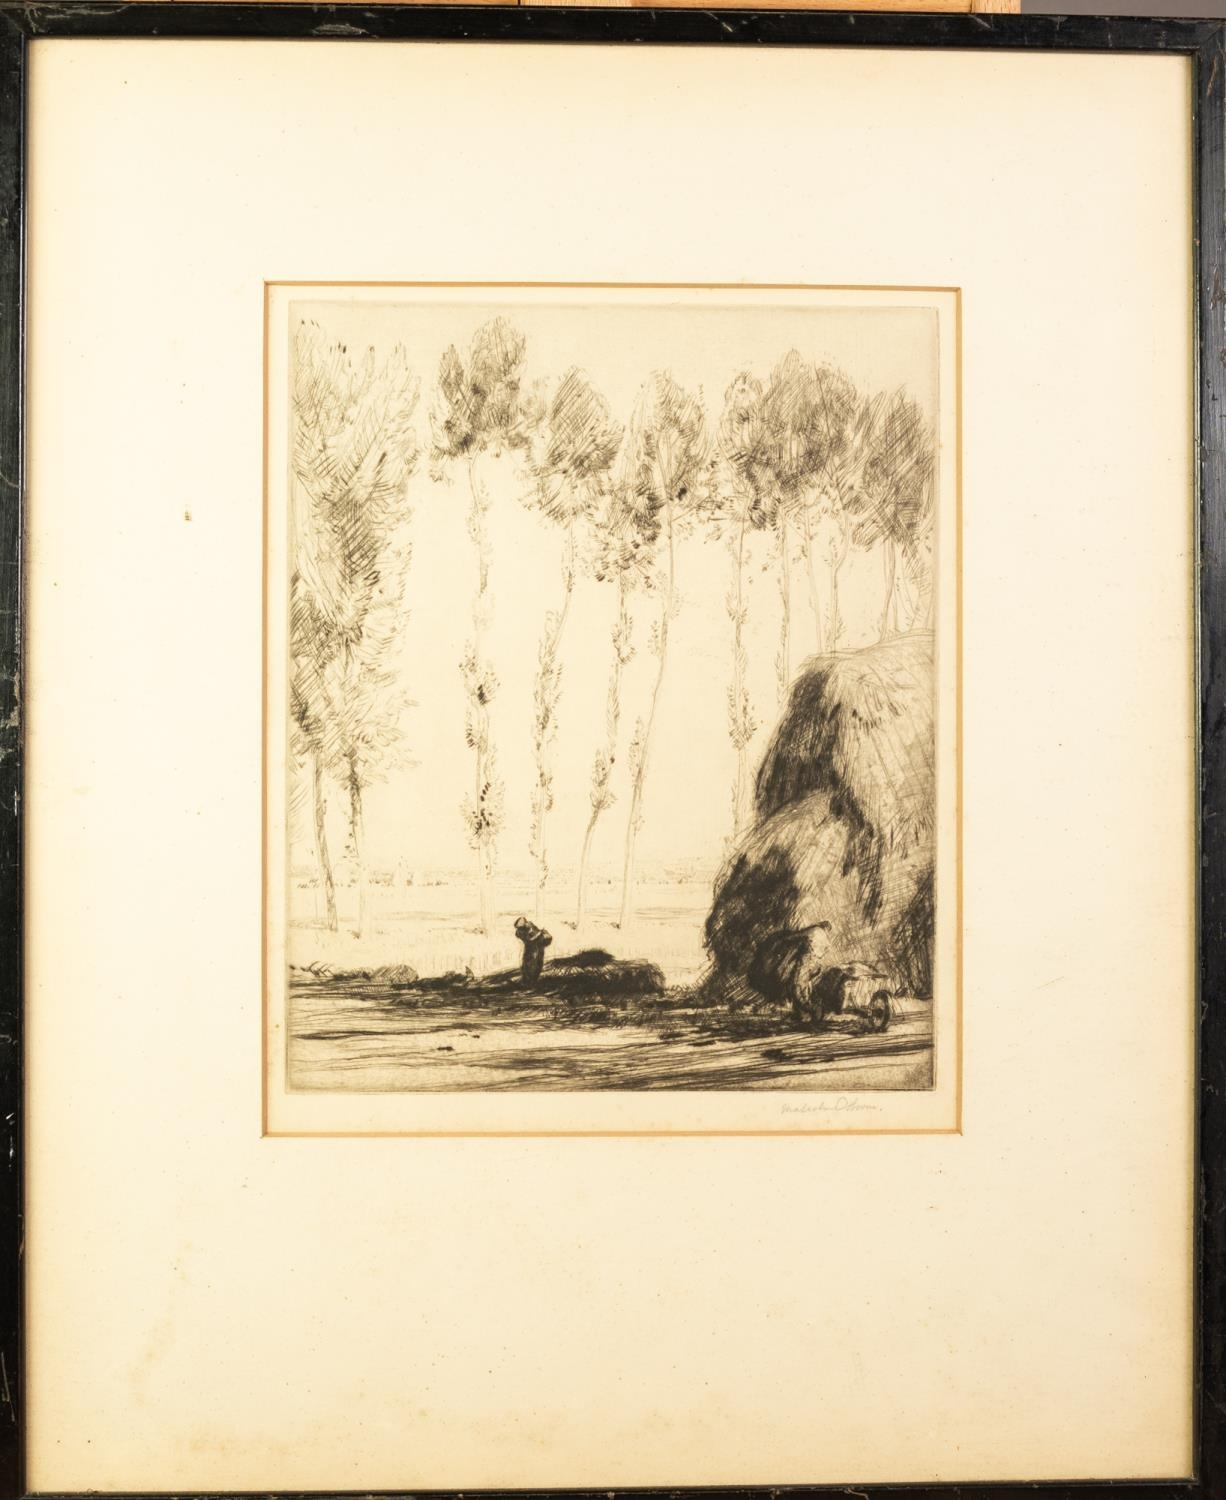 MALCOLM OSBORNE R.A. (1880-1963) ETCHING 'Avignon' Signed in pencil, titled on Gallery label - Image 2 of 2